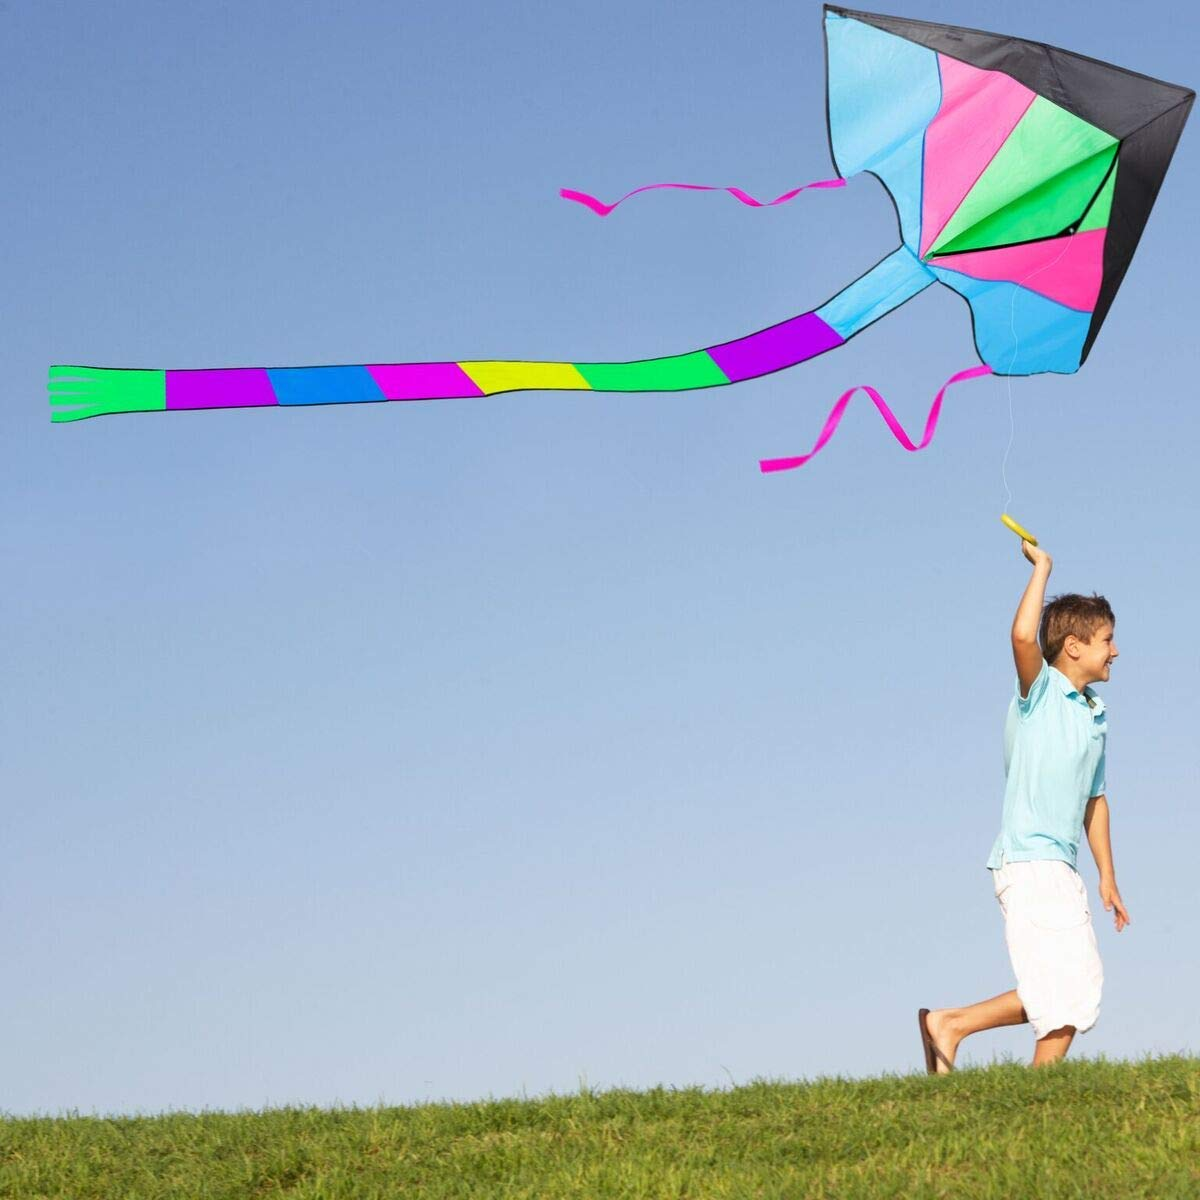 Easy to put together kite with great material!